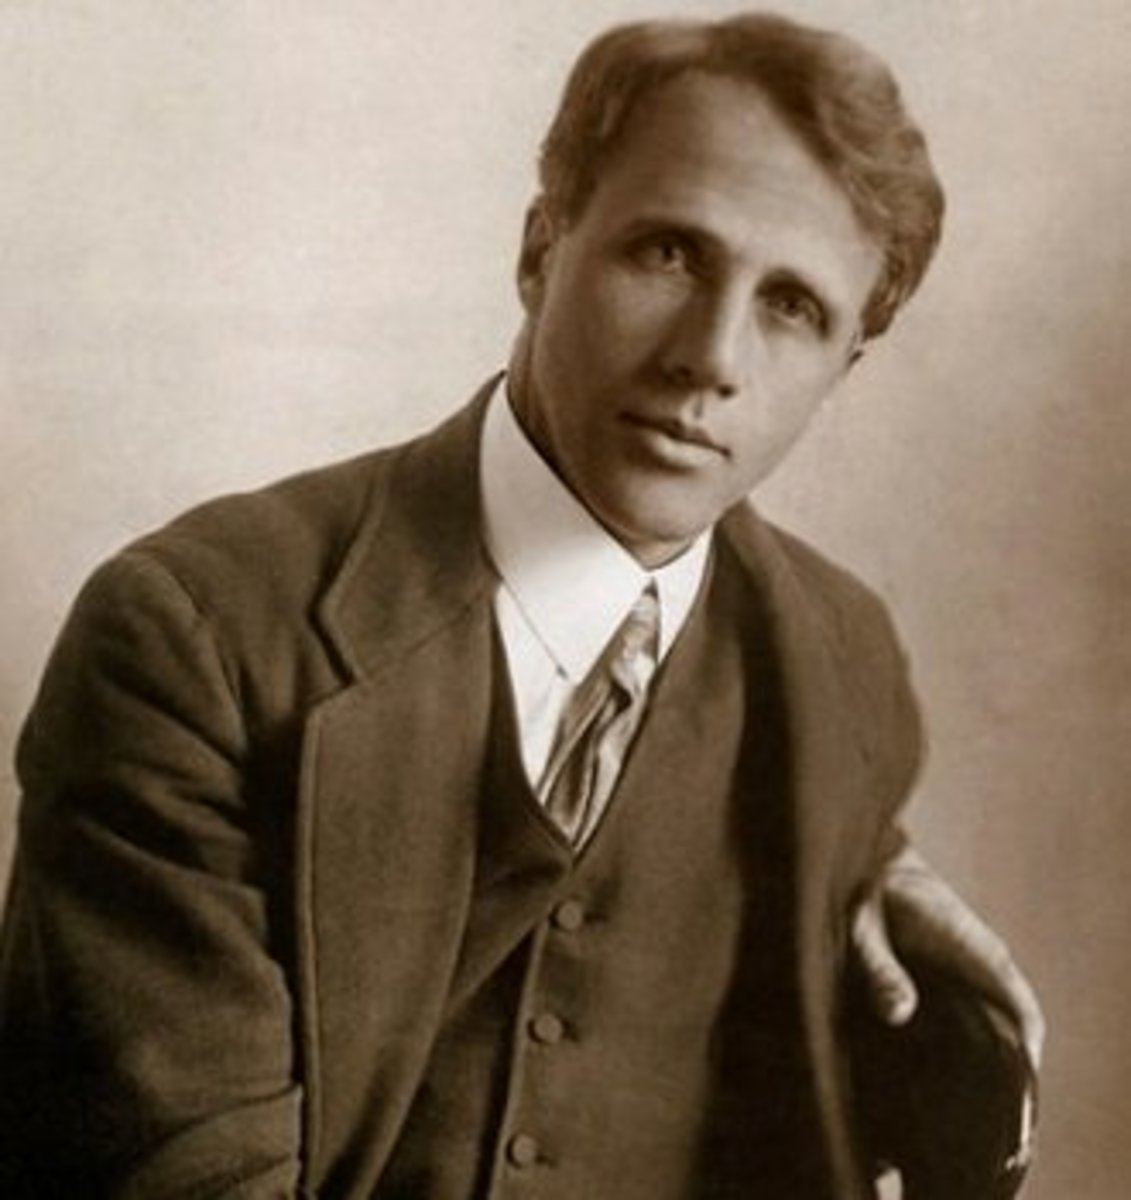 Robert Frost as a Young Man